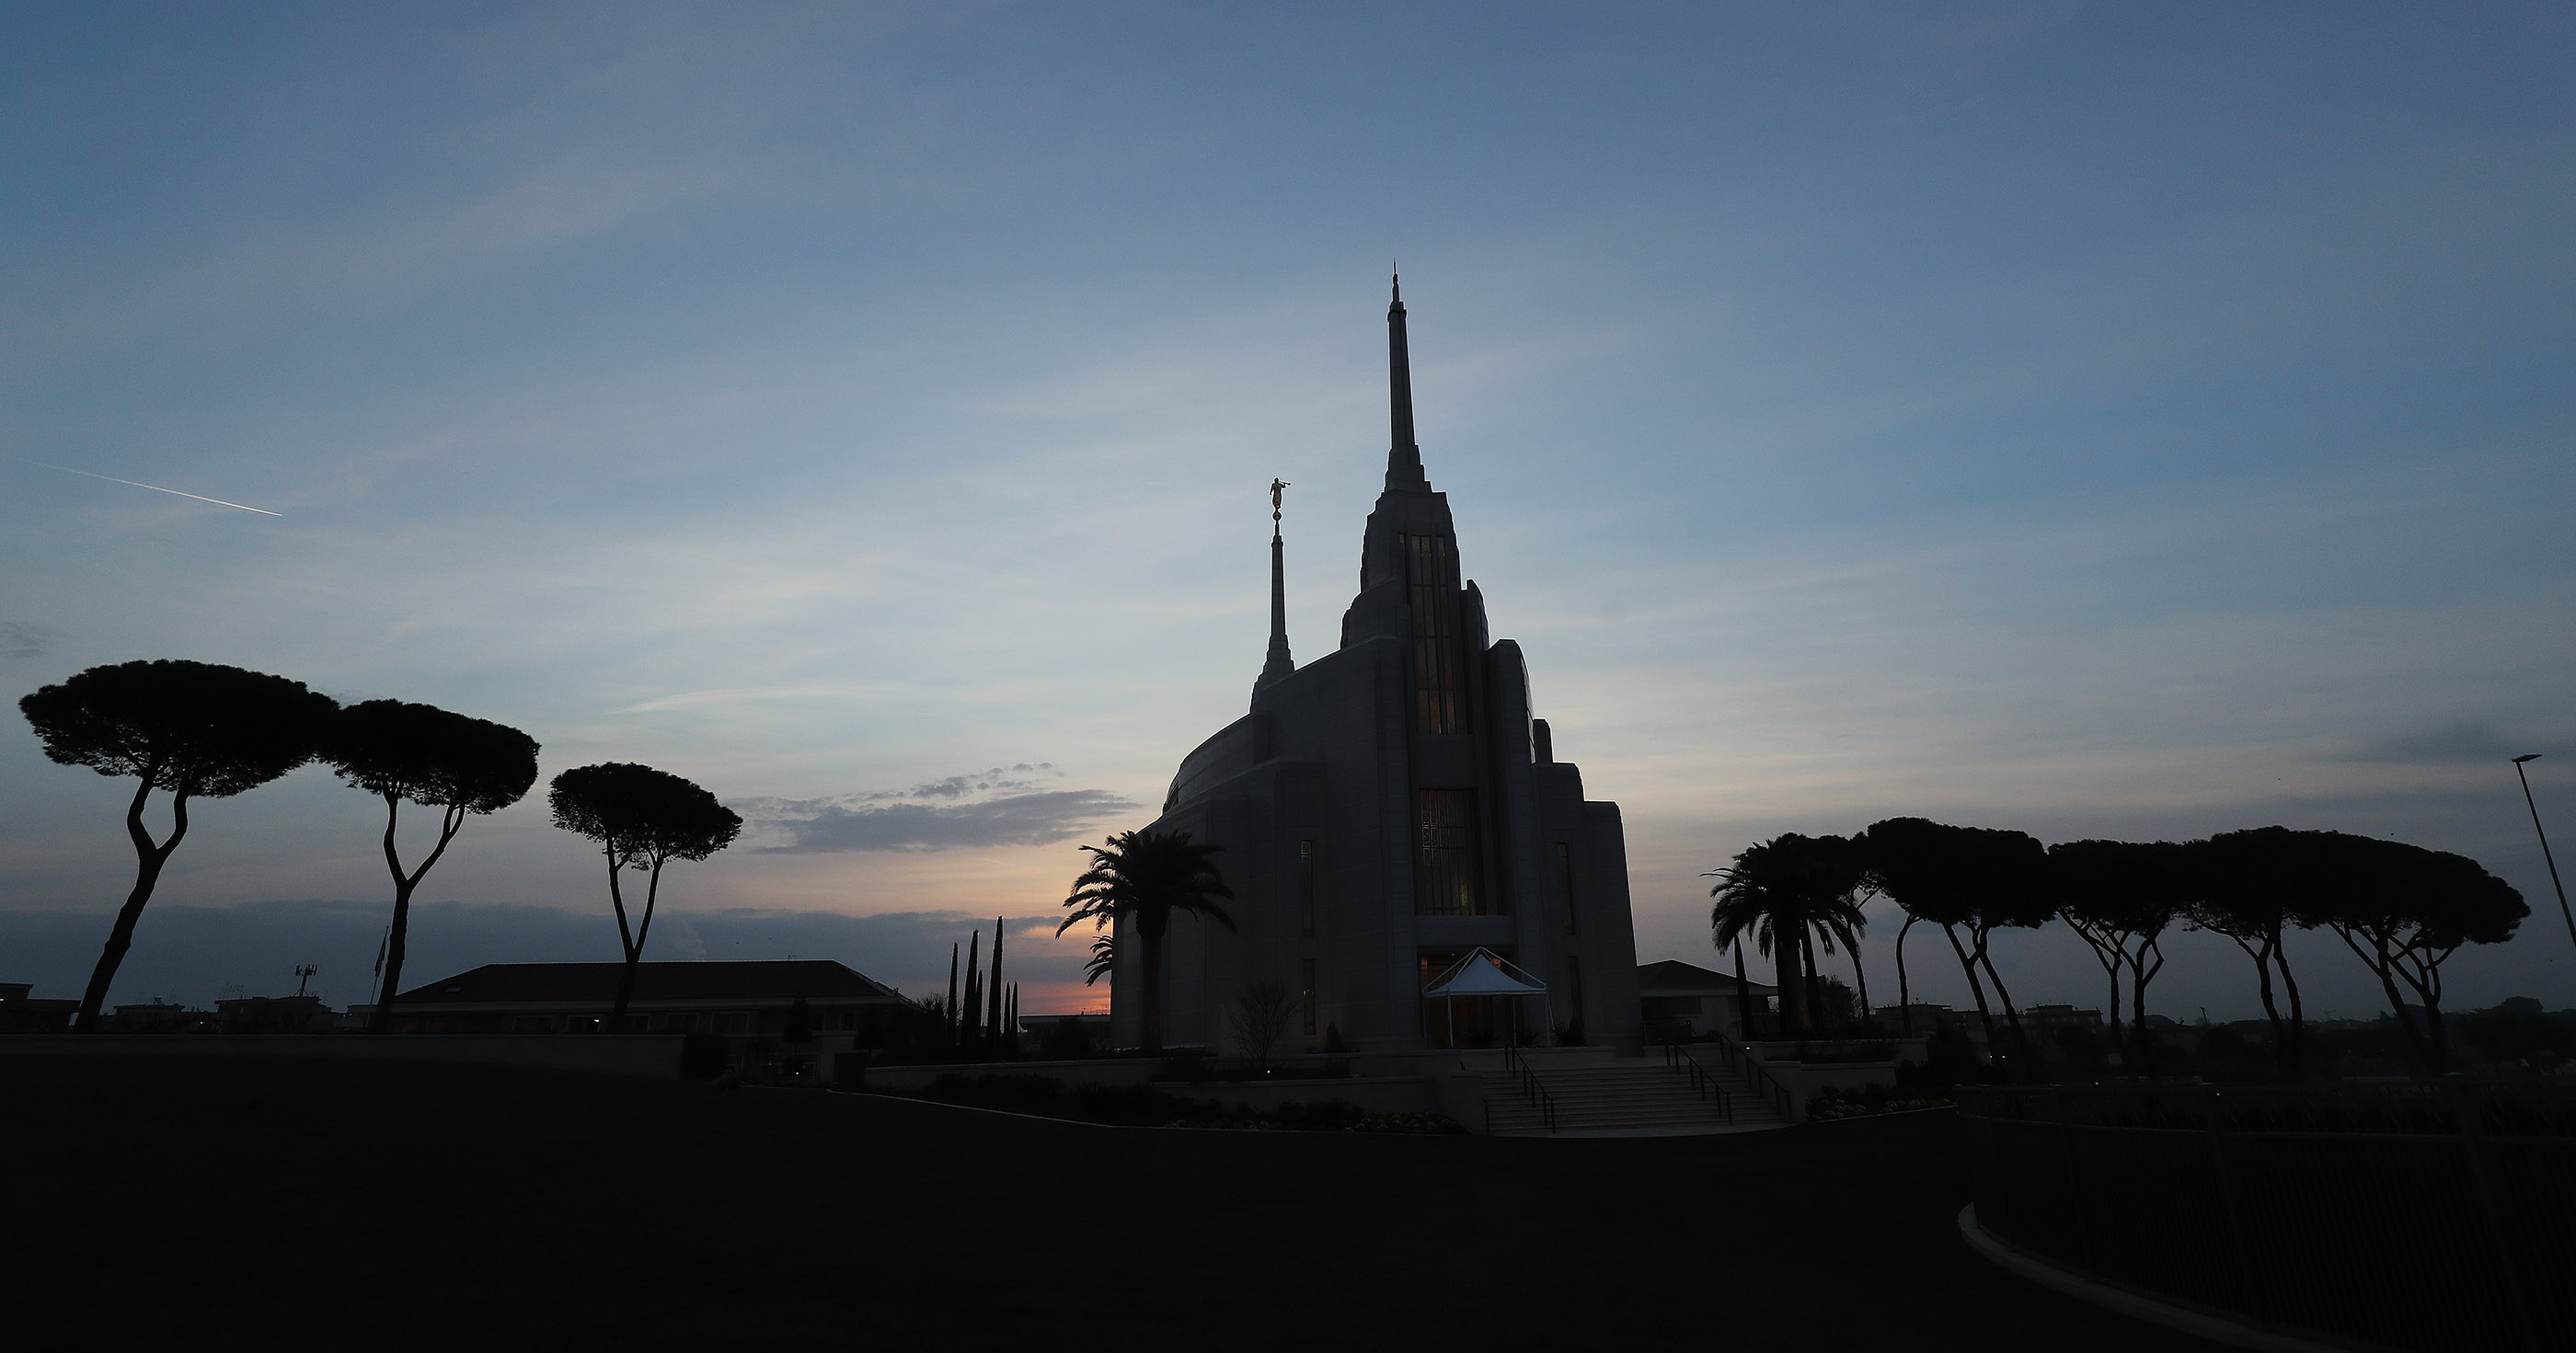 The Rome Italy Temple of The Church of Jesus Christ of Latter-day Saints at sunrise in Rome, Italy on Friday, March 8, 2019.